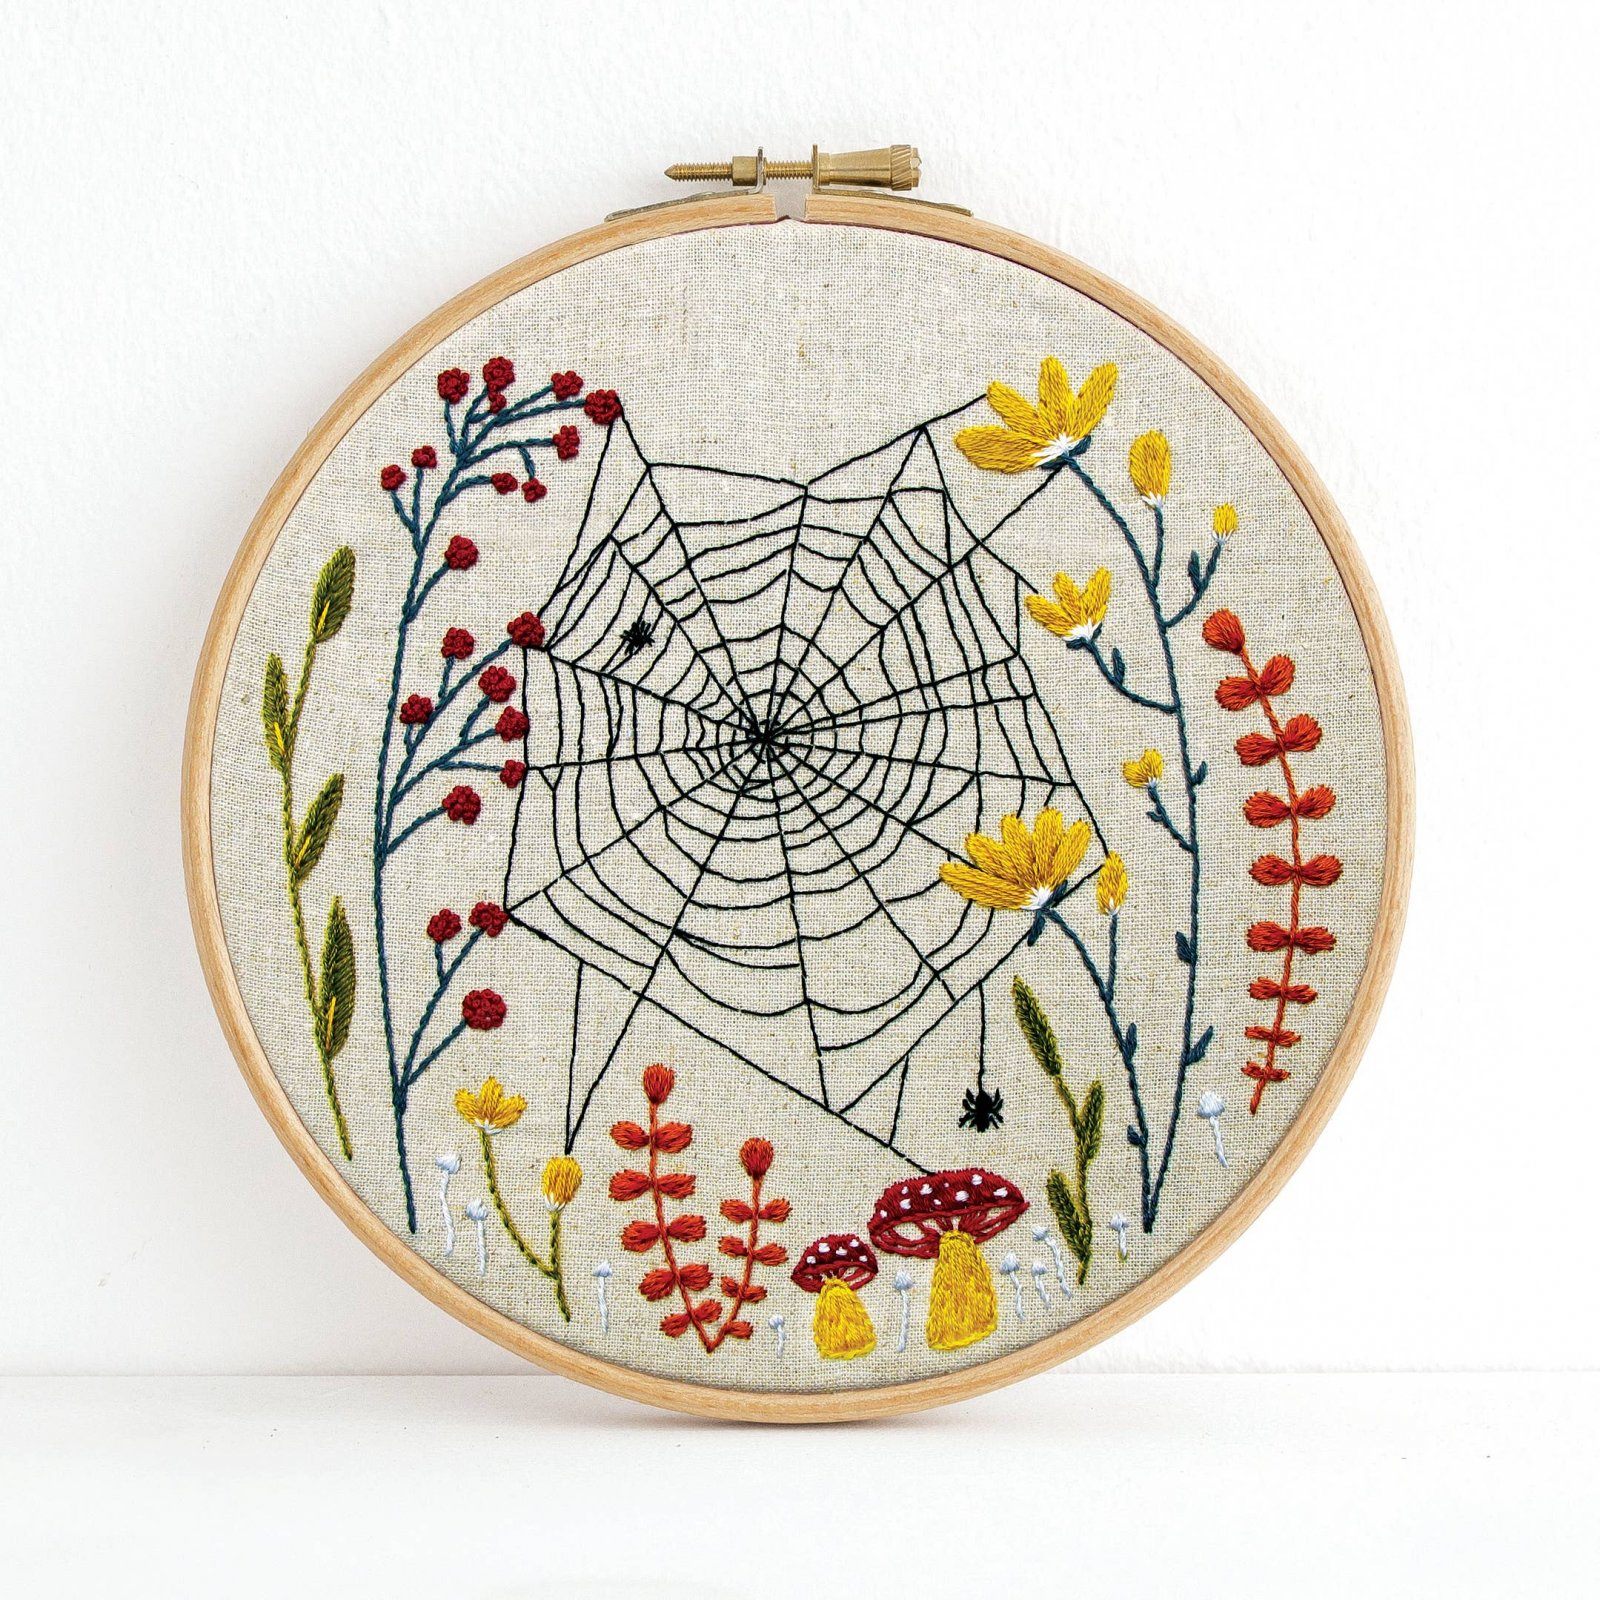 Kit budgiegoods Woven Embroidery